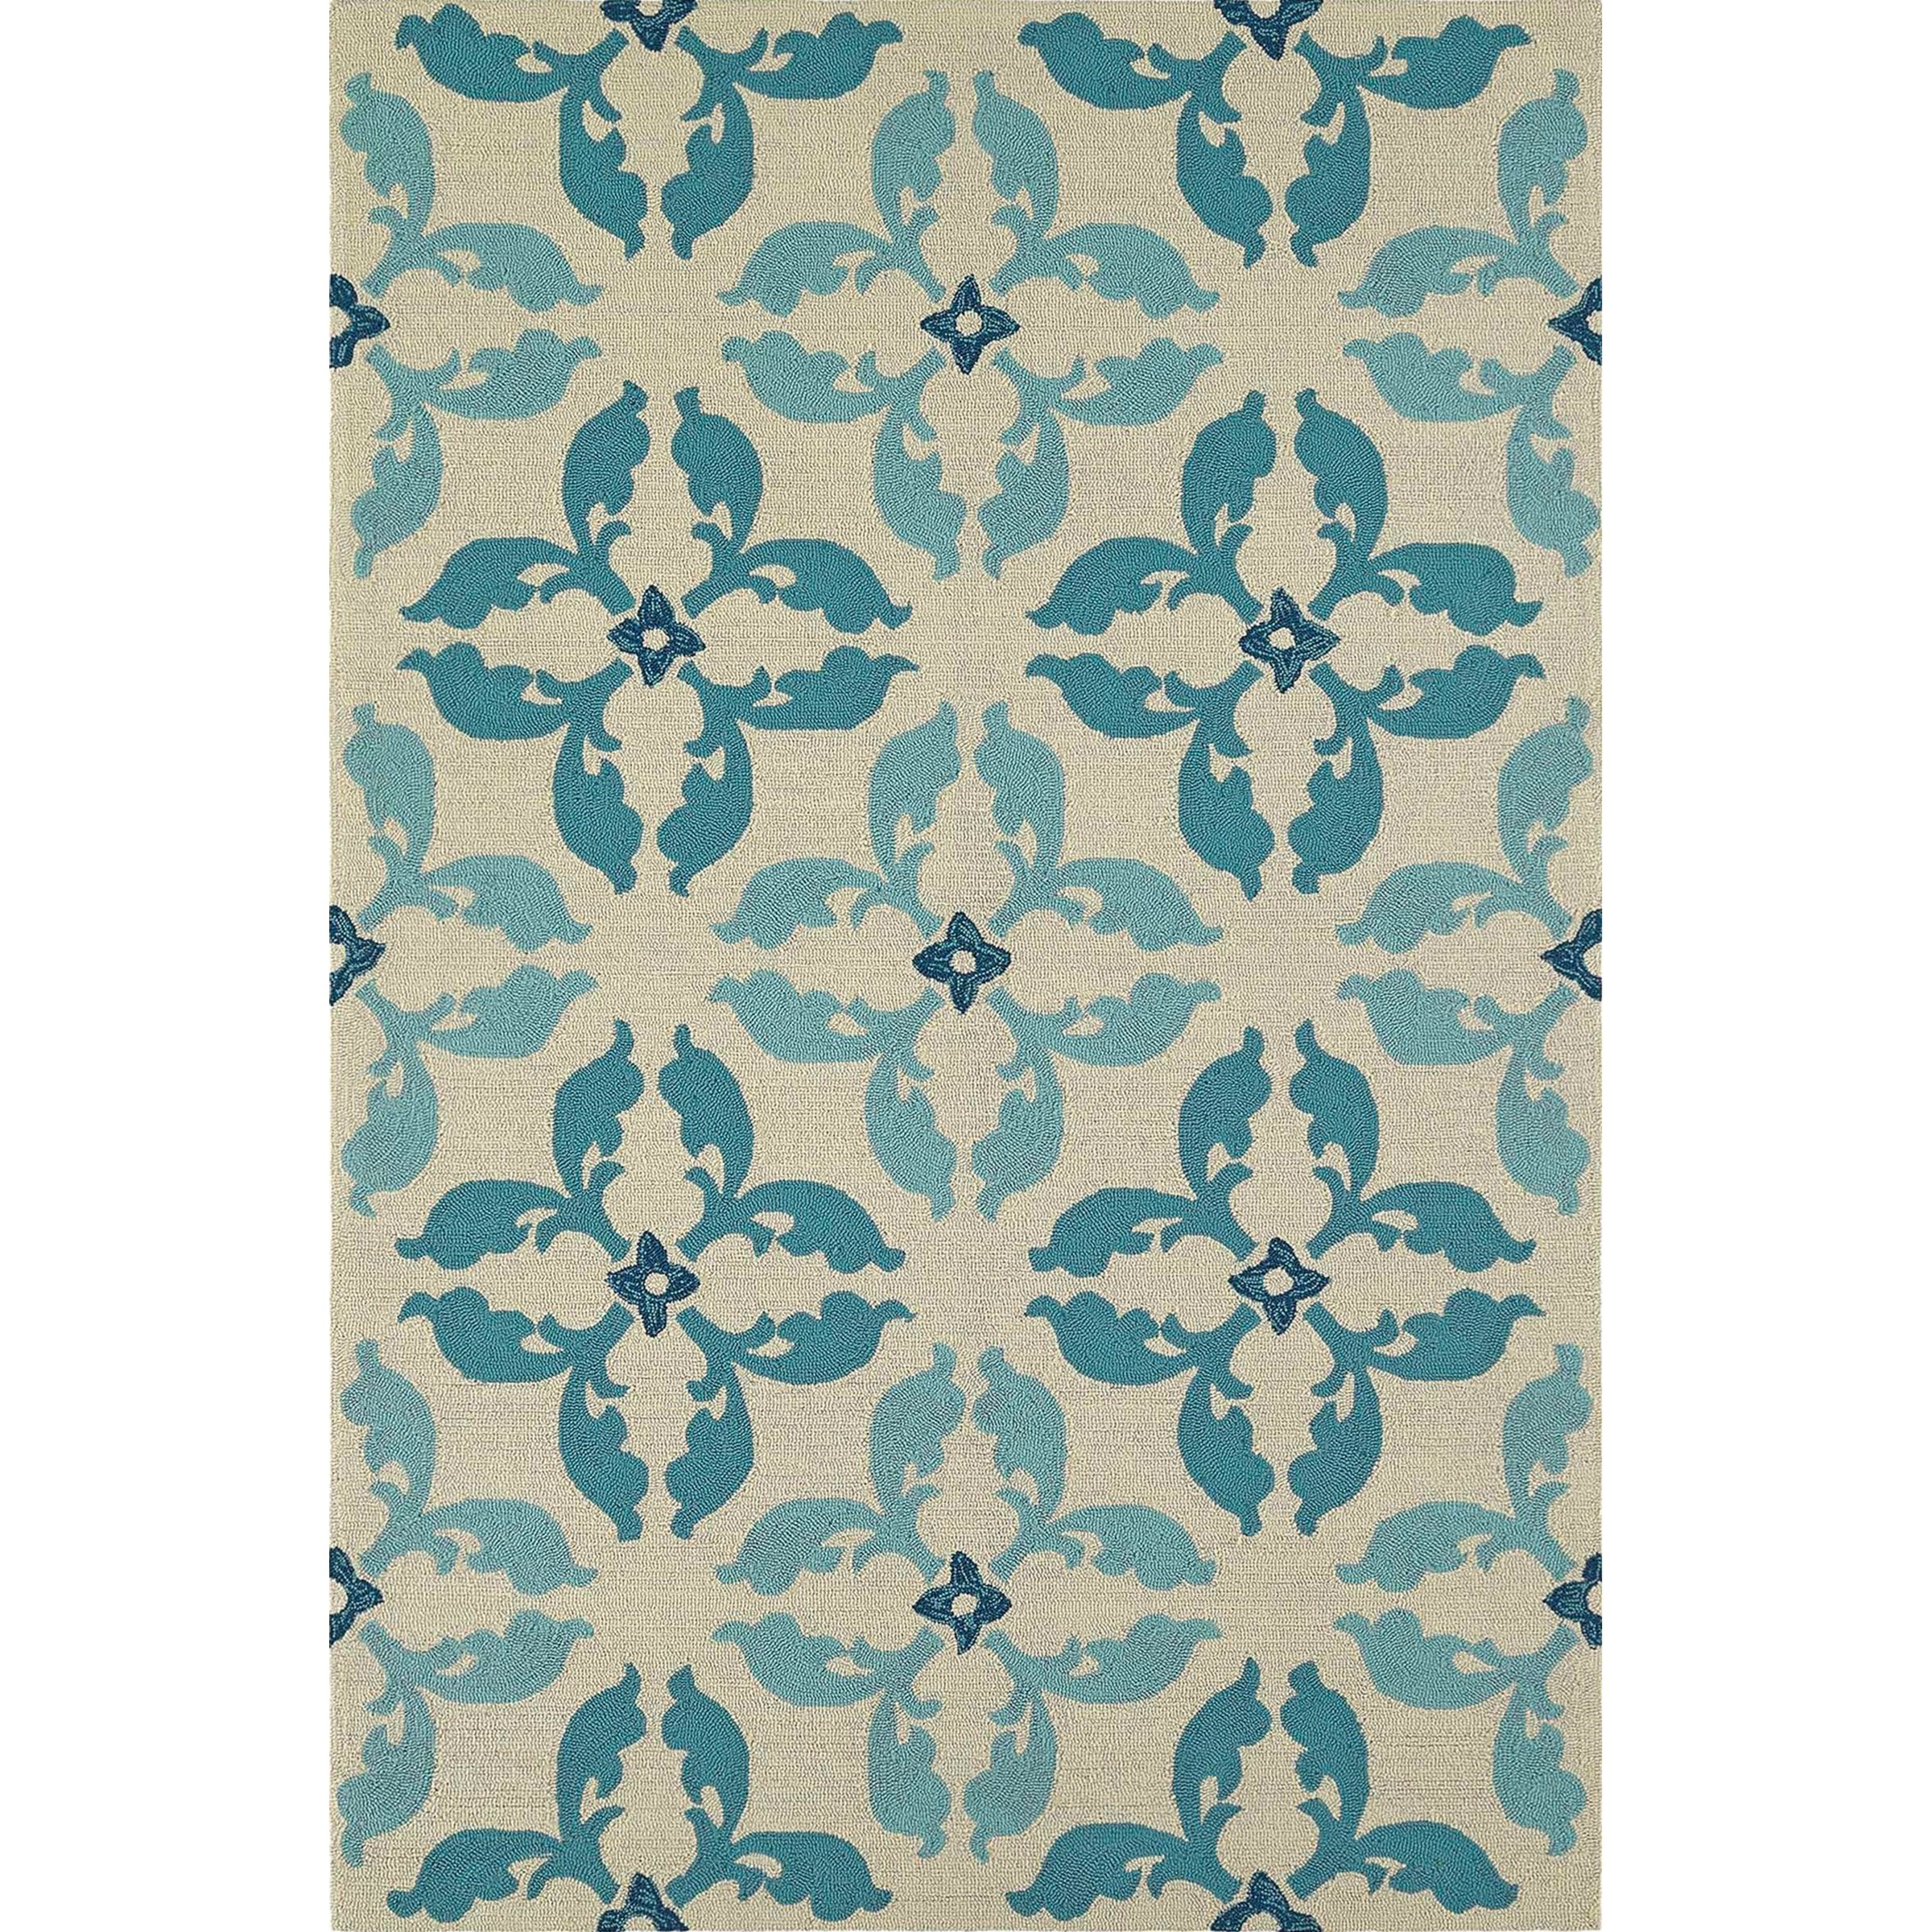 Dalyn Cabana Peacock 9'X13' Rug - Item Number: CN17PC9X13